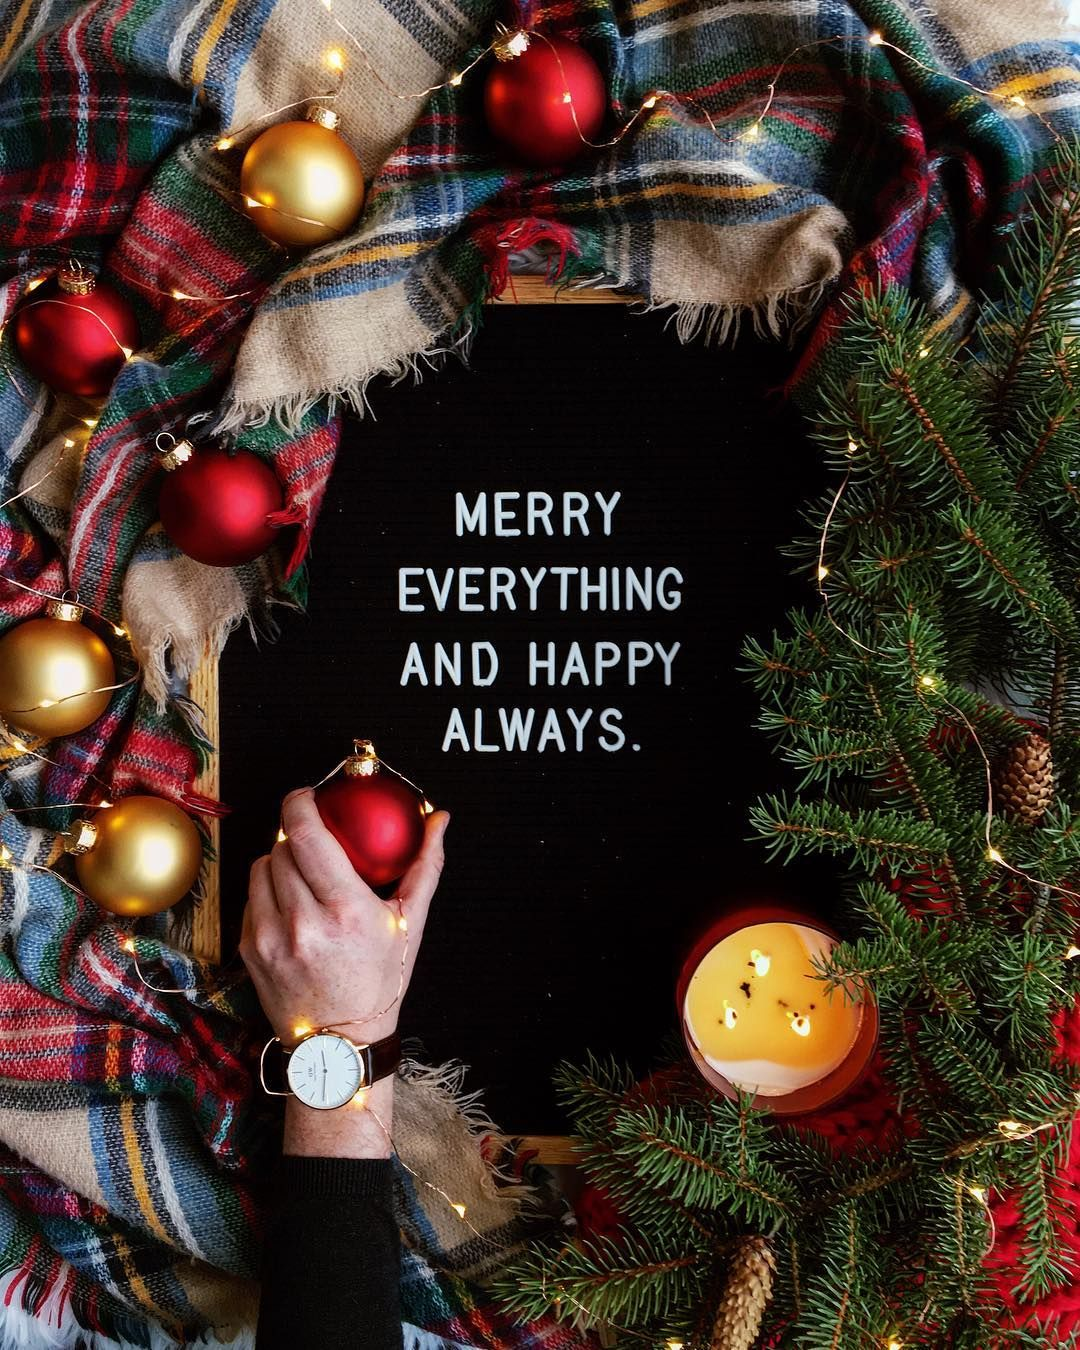 Bethany Grace On Instagram Oh Baybee Do You Know What Time It Is Yes Ya Uh Huh Merry Christmas Baby Christmas Aesthetic Christmas Pinterest